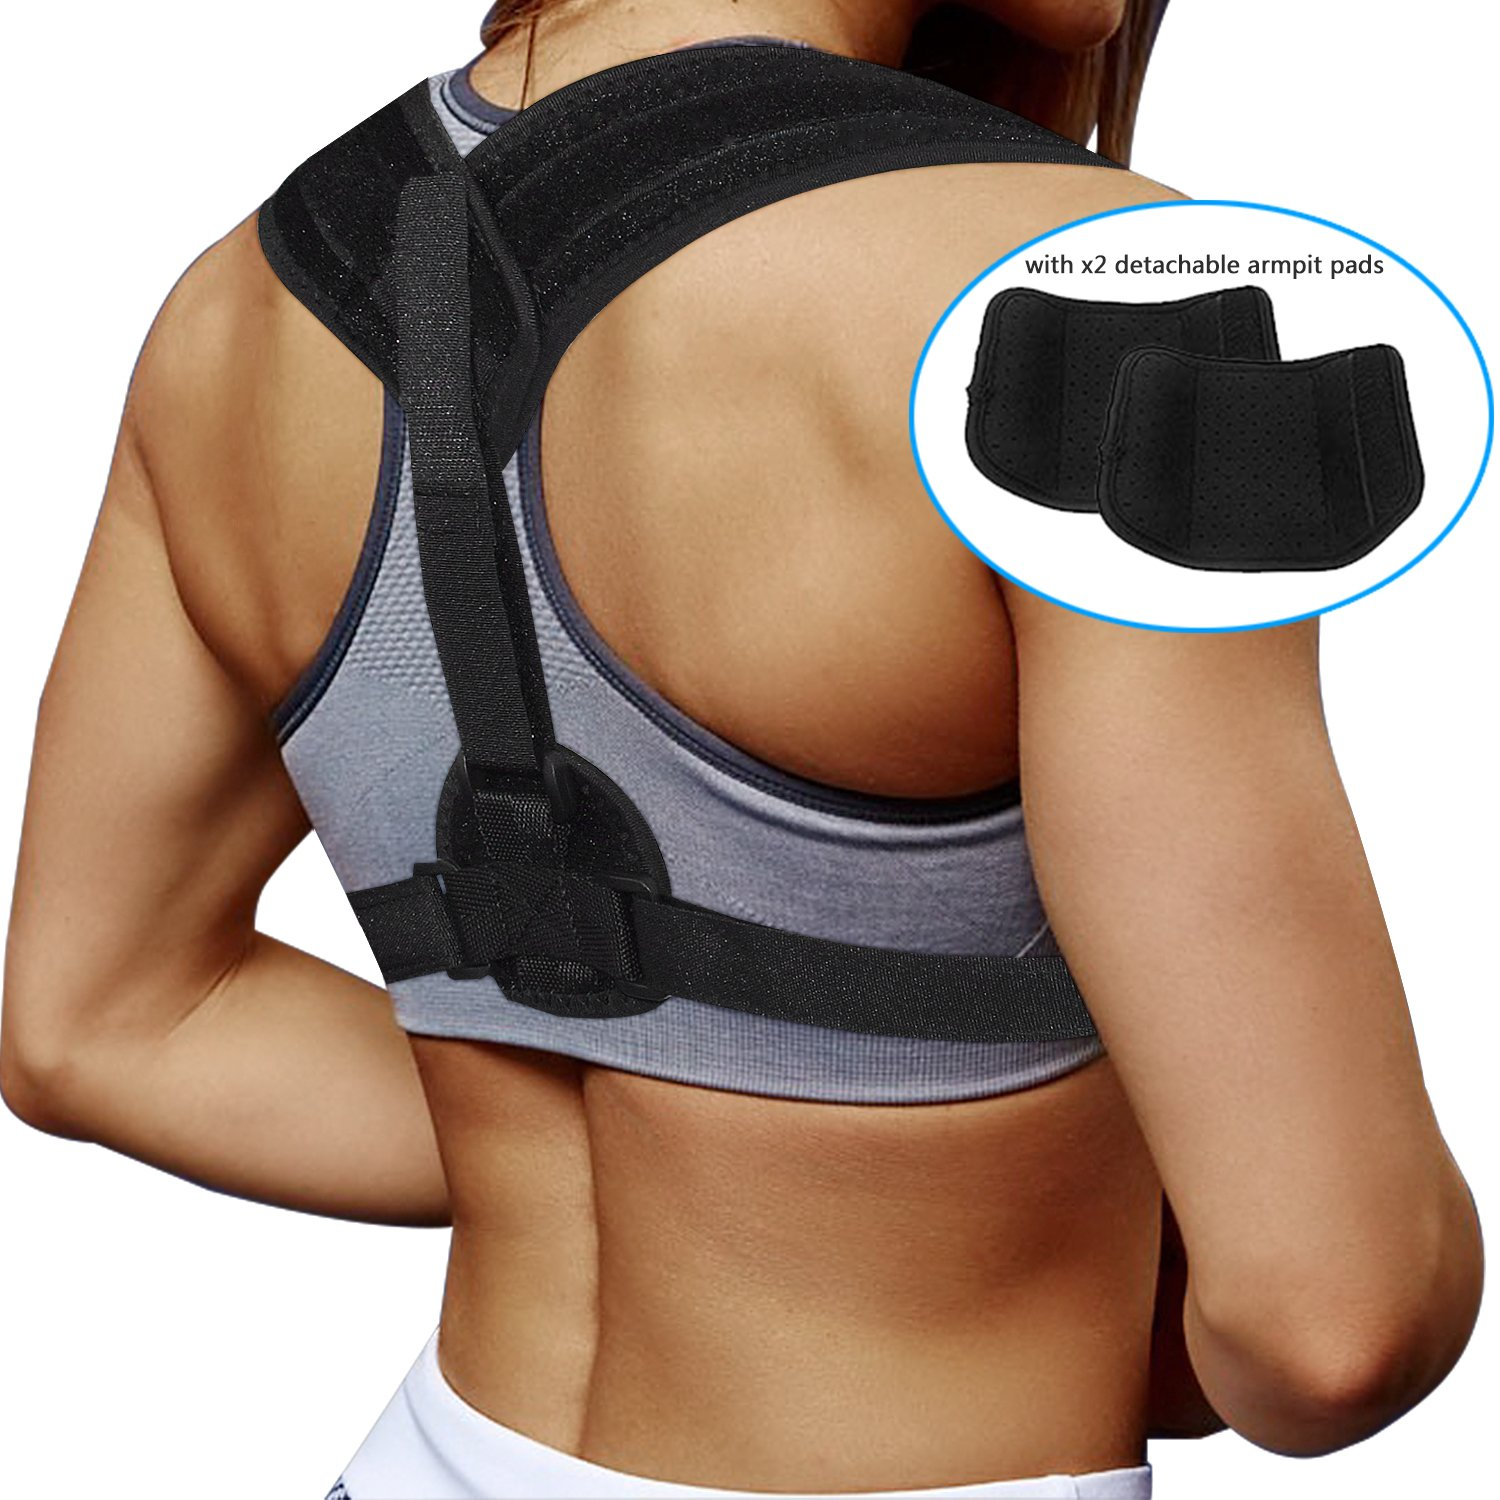 Upgrade Posture Corrector Trainer, Physical Therapy Posture Brace for Men Or Women - Back, Shoulder, and Neck Pain Relief